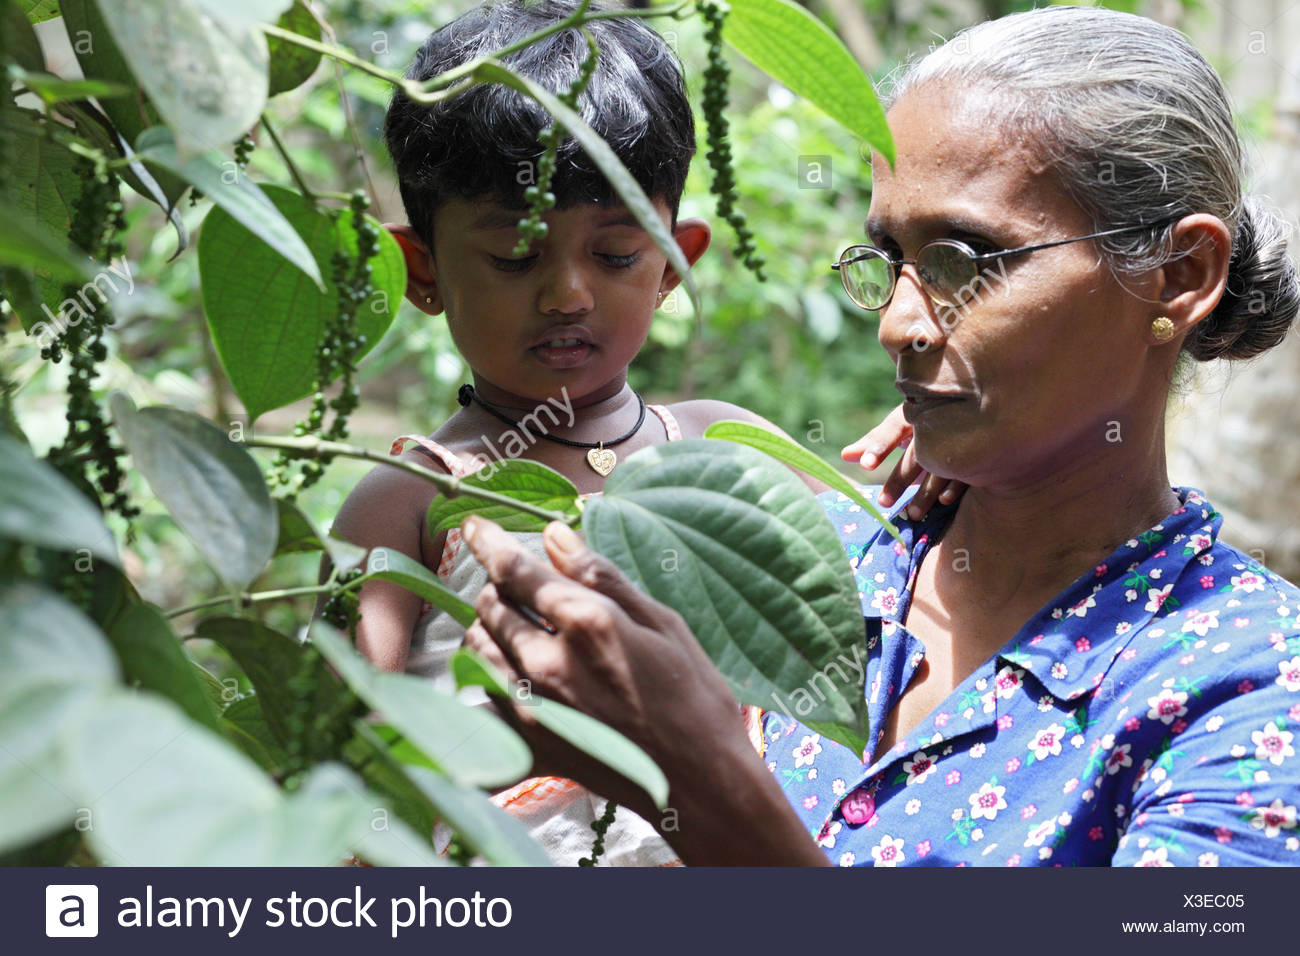 Ambalangoda, Sri Lanka, woman with a baby in her arms in front of a pepper tree - Stock Image